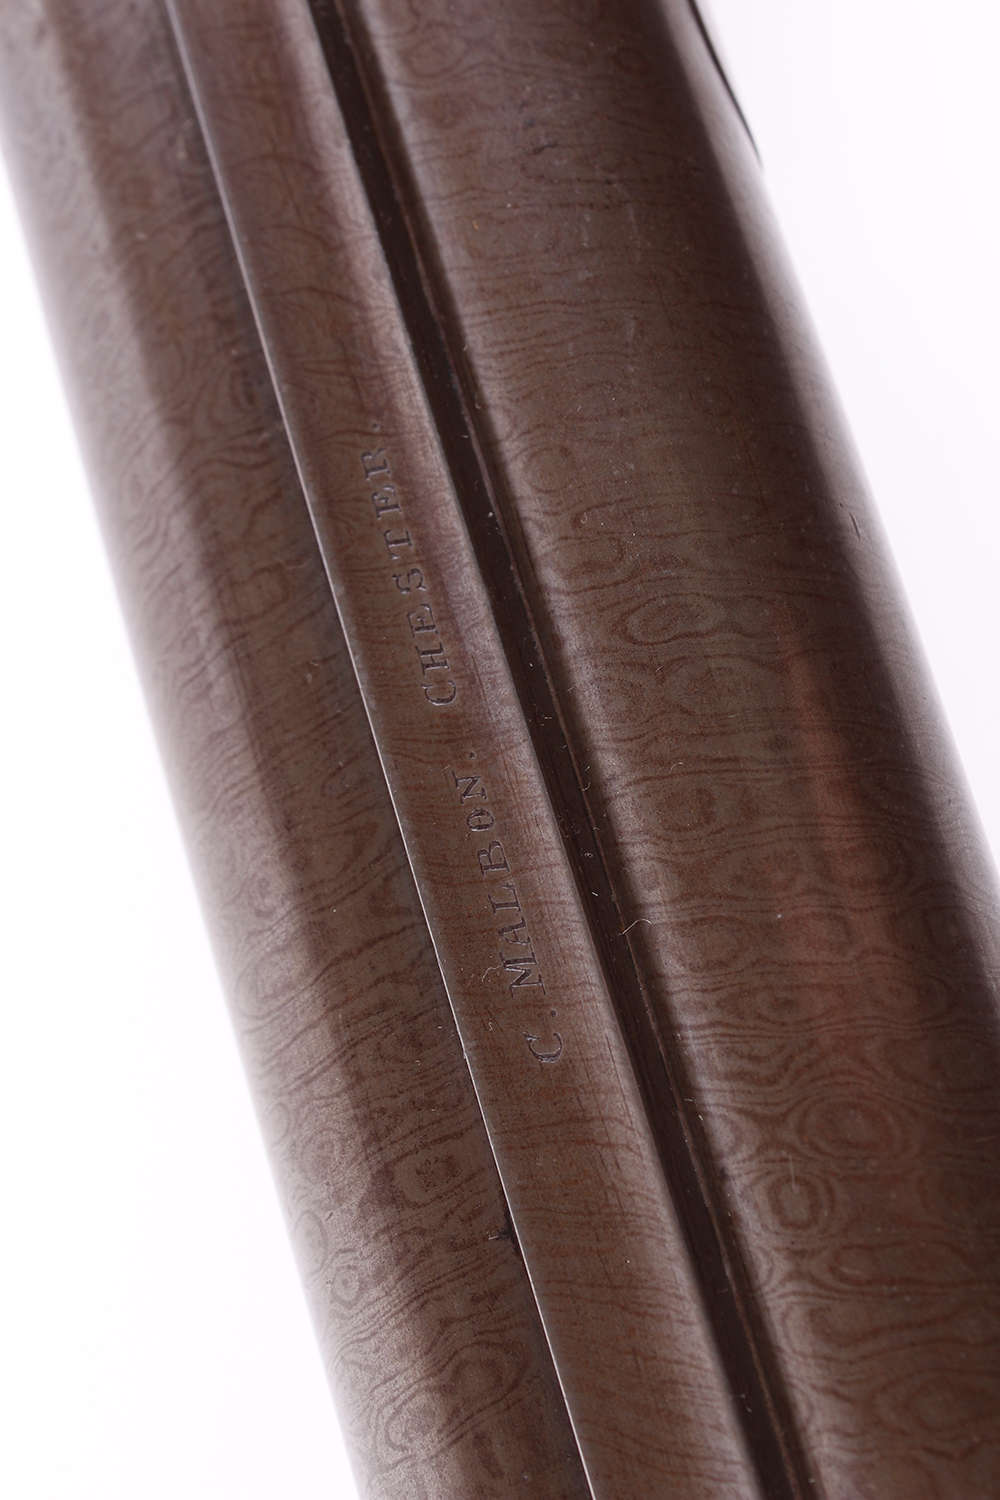 Lot 703 - (S58) 8 bore Percussion by C Malbon, 33 ins brown damascus barrels with broad rib stamped C Malbon